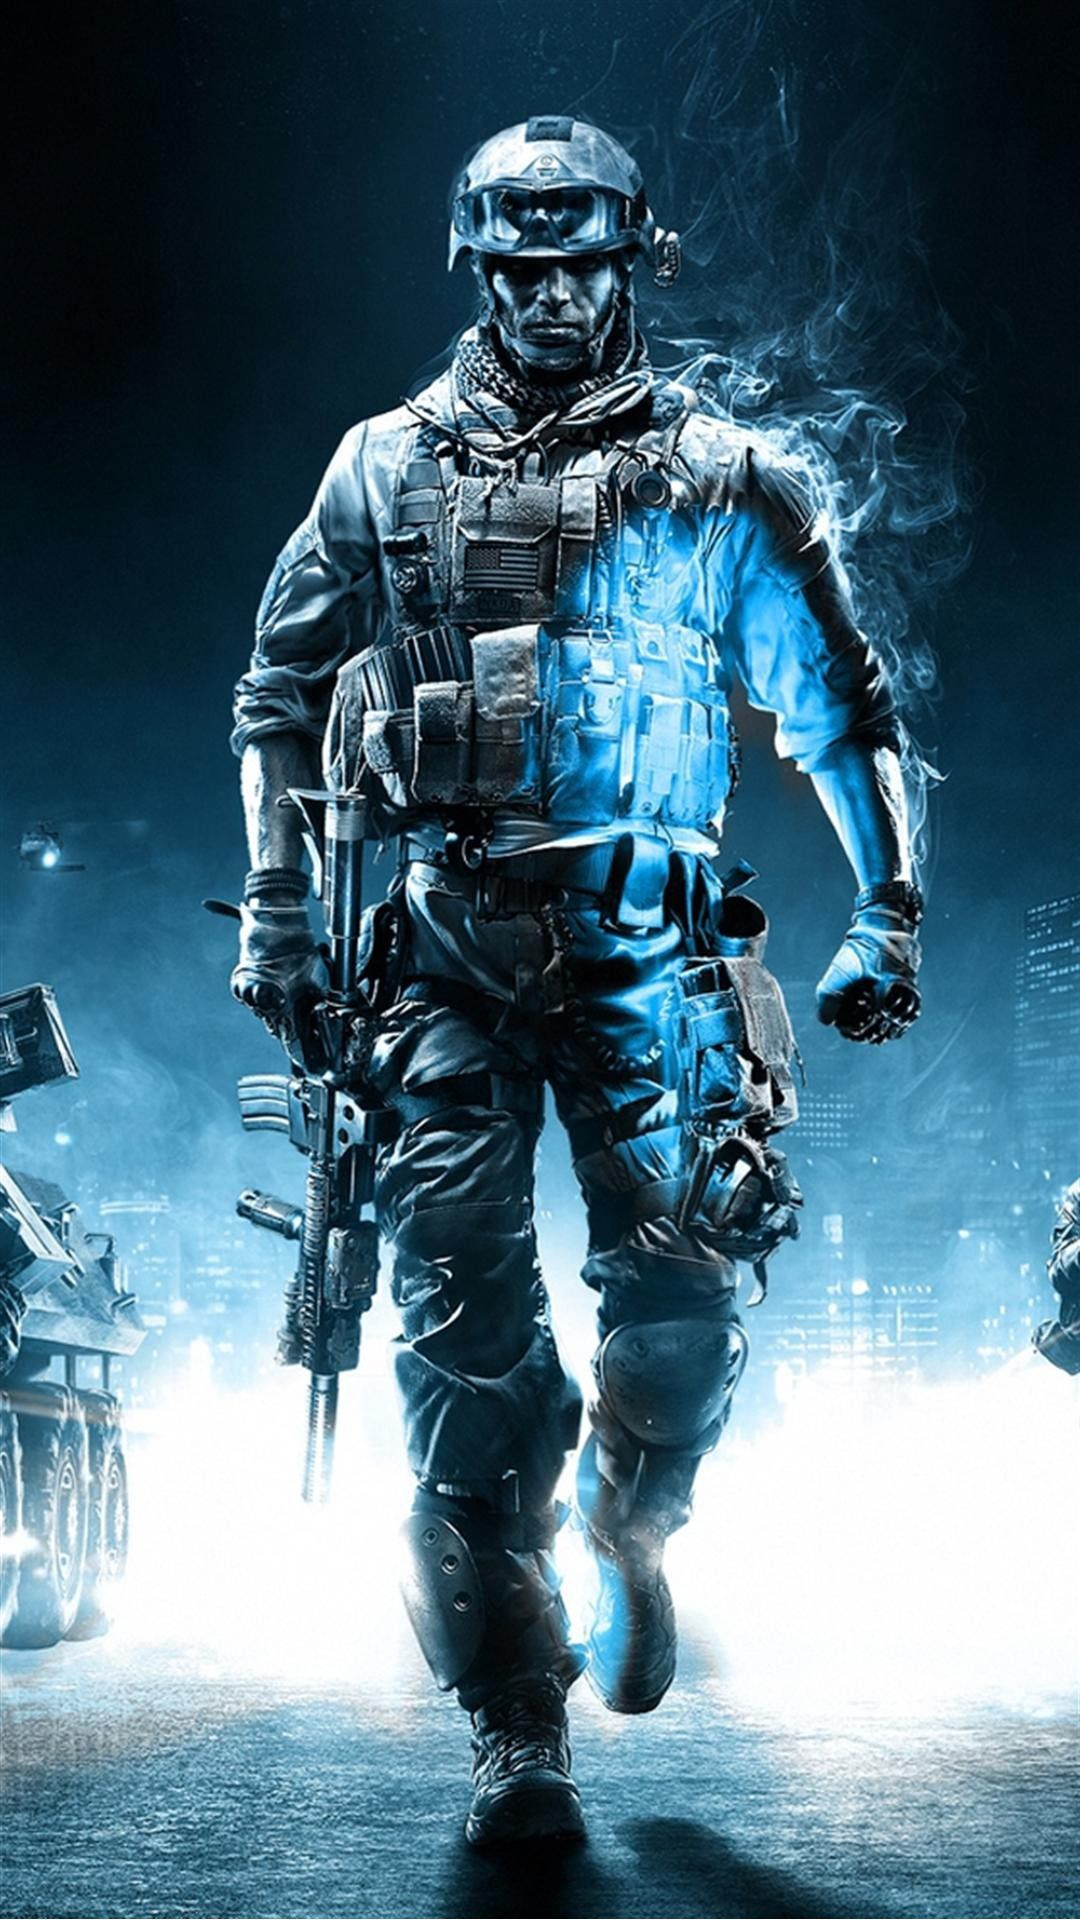 Call Of Duty Ghosts Android Wallpaper Free Download Call